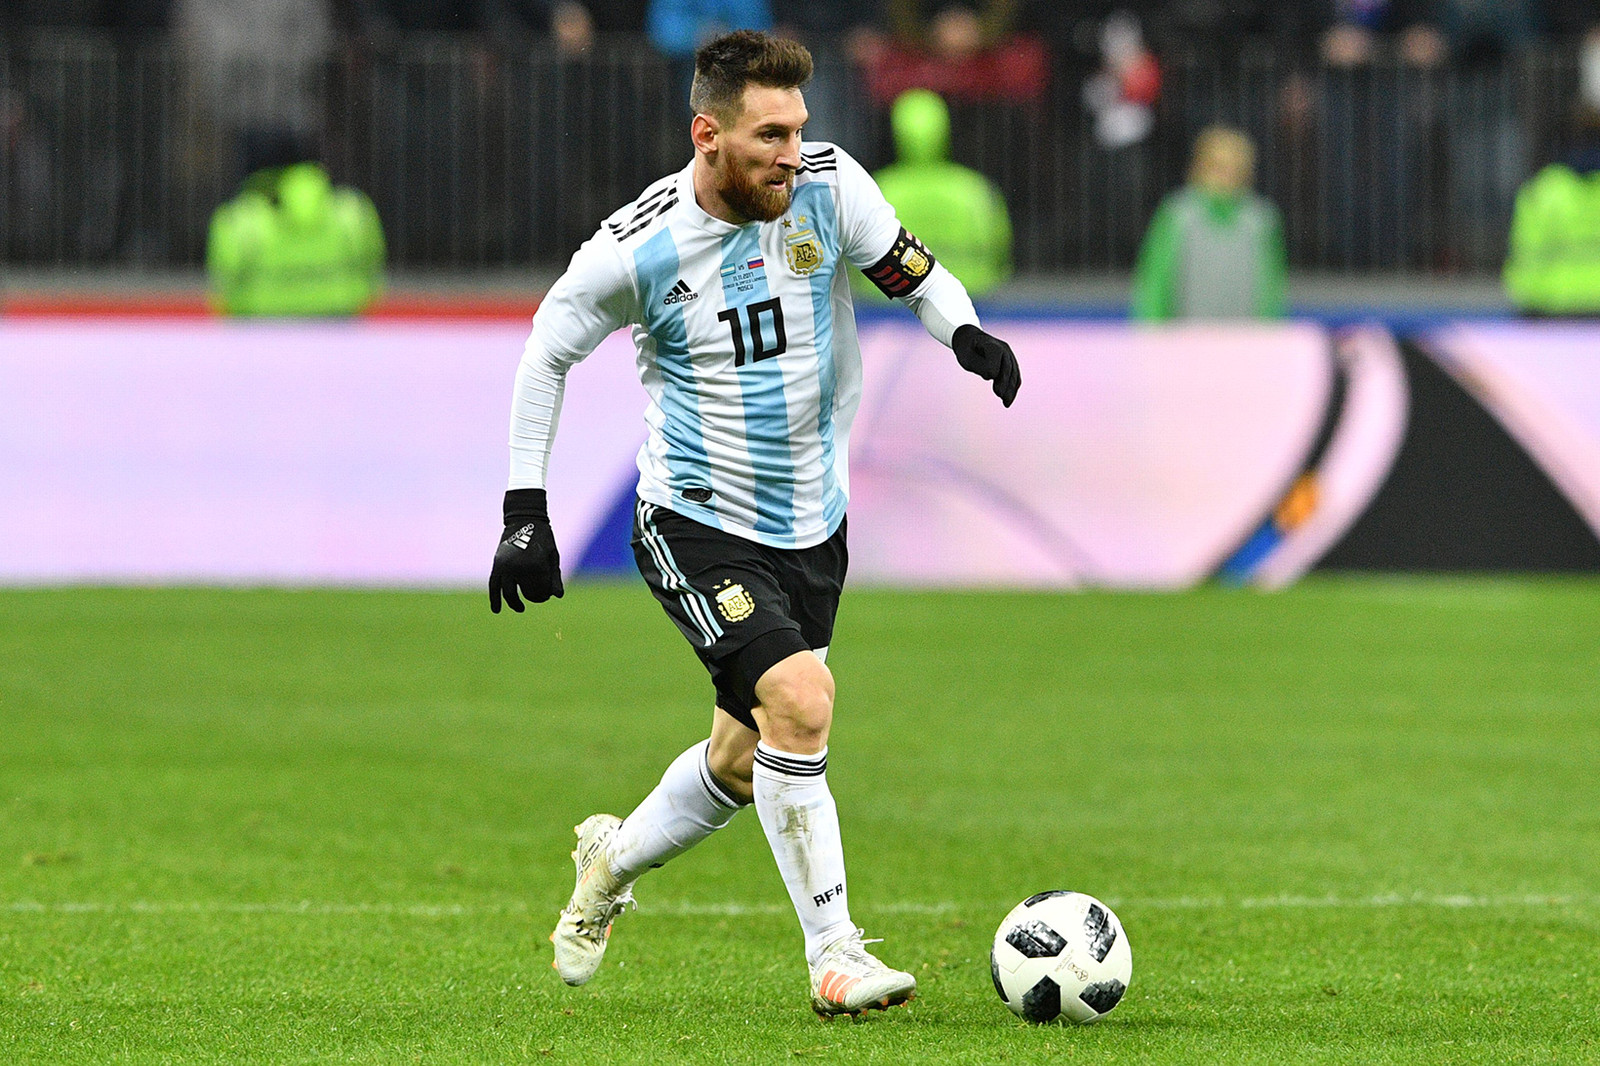 2018 FIFA World Cup Guide Predictions Winner Best Player Team Young Breakout Star Cristiano Ronaldo Portugal Lionel Messi Argentina Spain Brazil Germany Werner Results Fixtures Champion